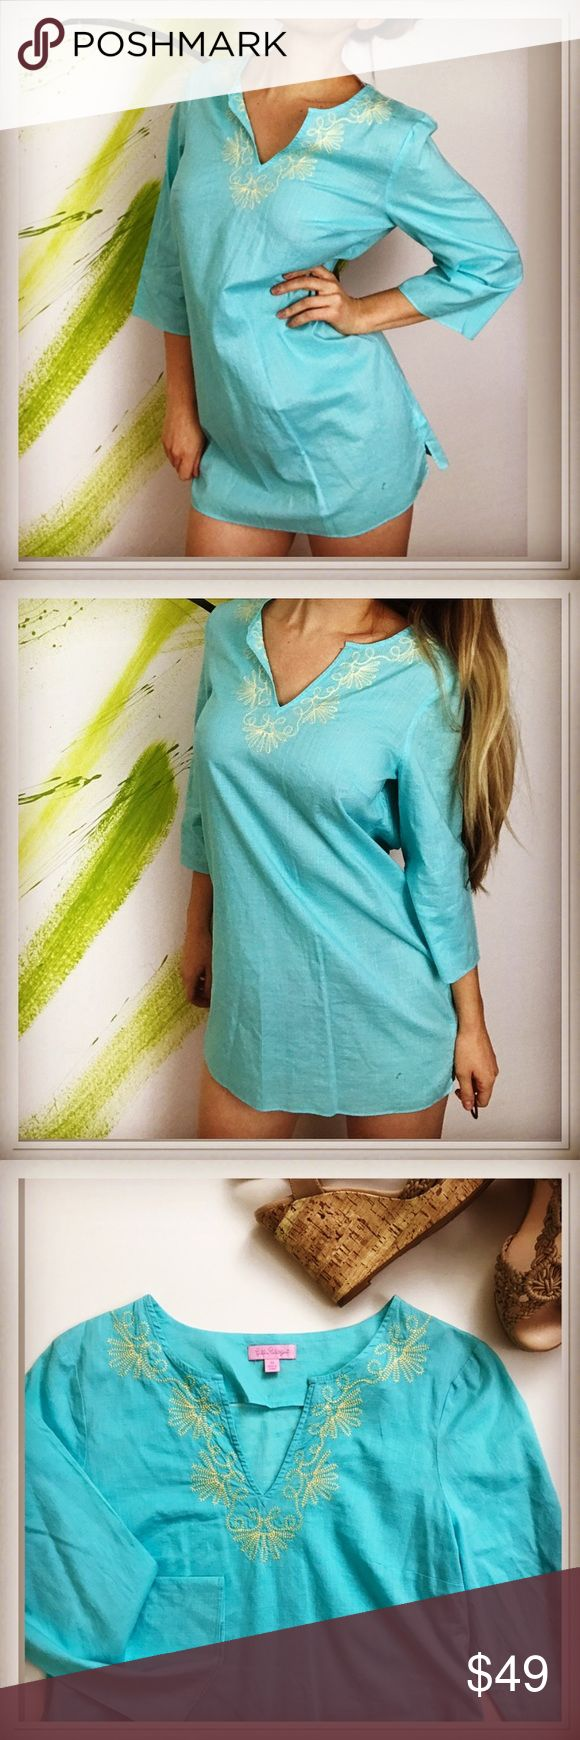 """Lily Pulitzer embroidered shift dress cover up Lily Pulitzer embroidered shift dress cover up is preppy and so cute. Gorgeous high quality embroidery in light yellow color. Beautiful light blue/aqua color dress is perfect for those of us who are lucky to celebrate this holiday season in the tropics🌈🌴 colorful, detailed designer dress is size M on tag, but feels like it would be good for S as well as its relaxed fit. Pit to pit 20"""" length 32"""". Little short on me -I'm 5.9"""" like new…"""